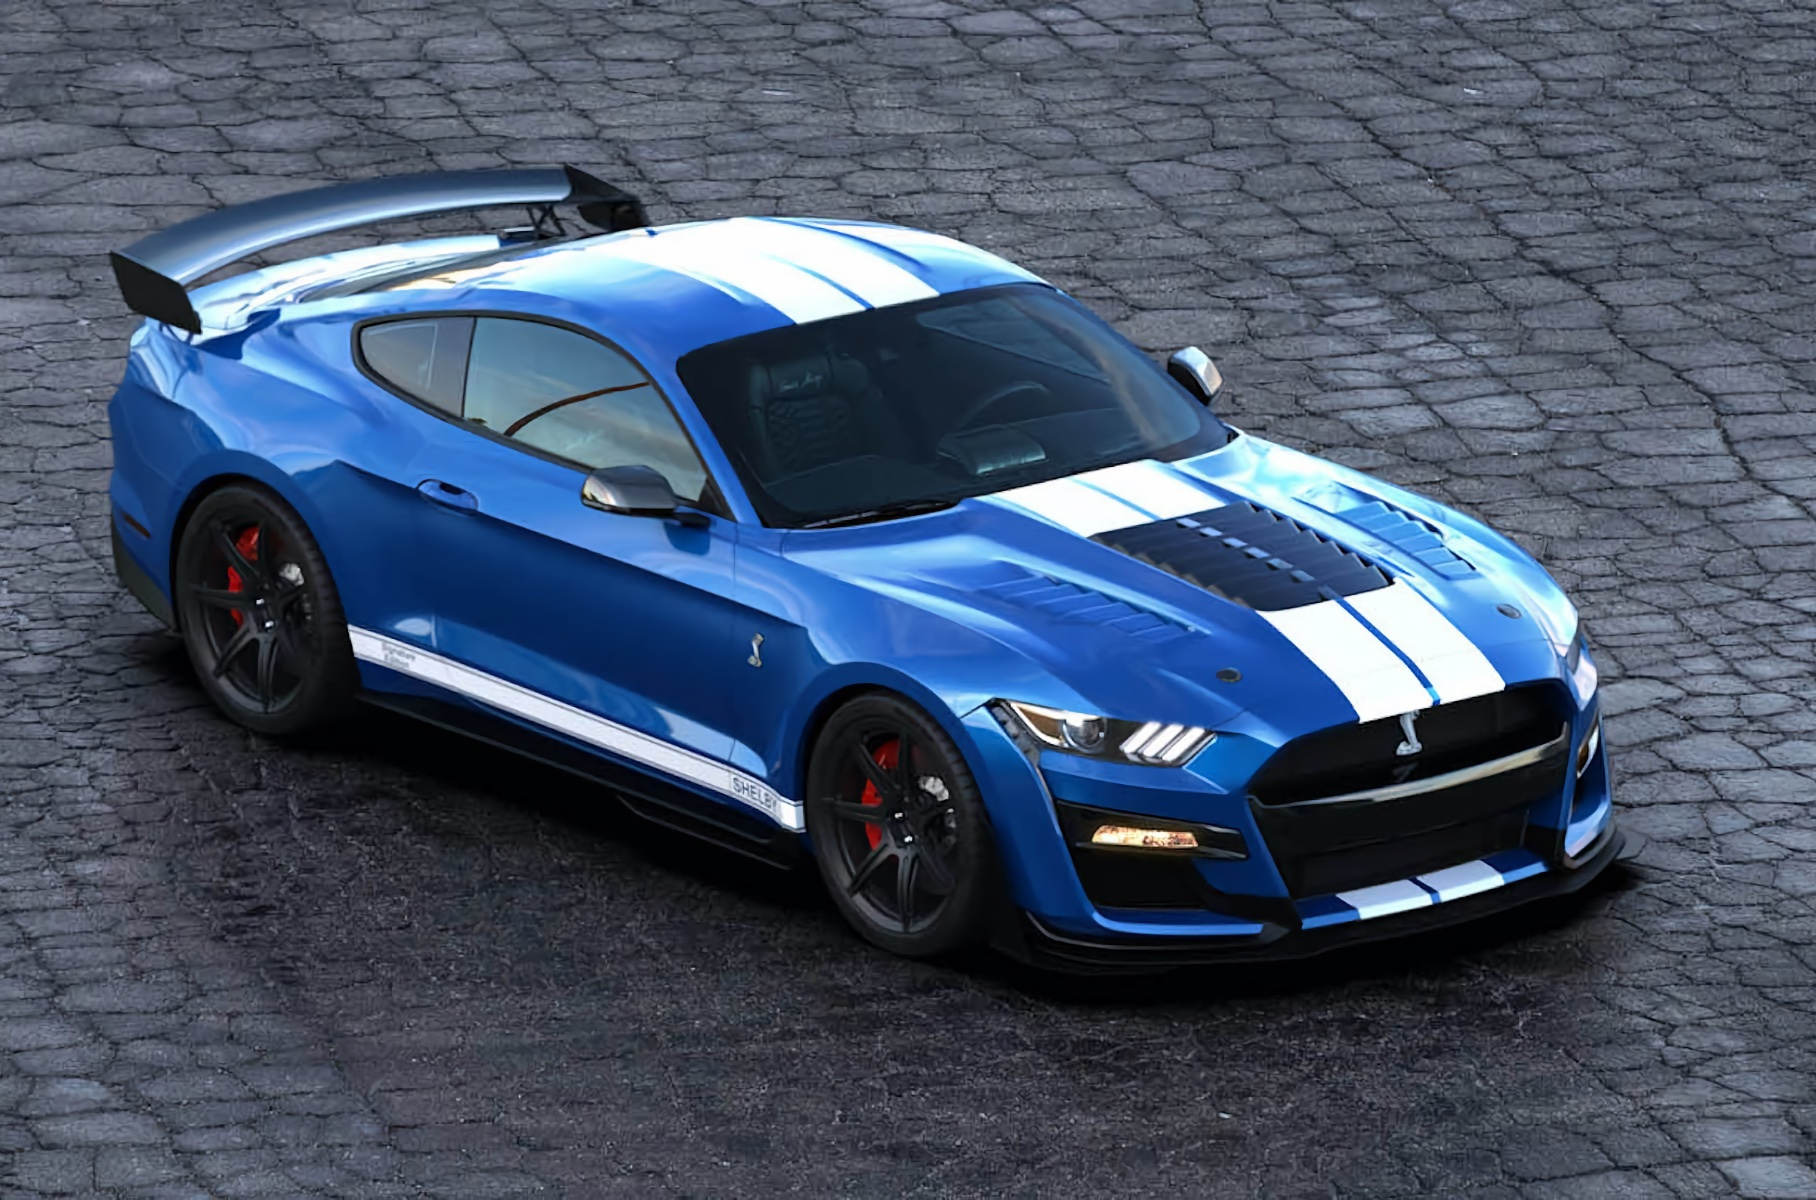 Shelby has unveiled an option package named Carroll Shelby SE for all GT500 owners, which notably includes a performance boost to 800 horsepower.